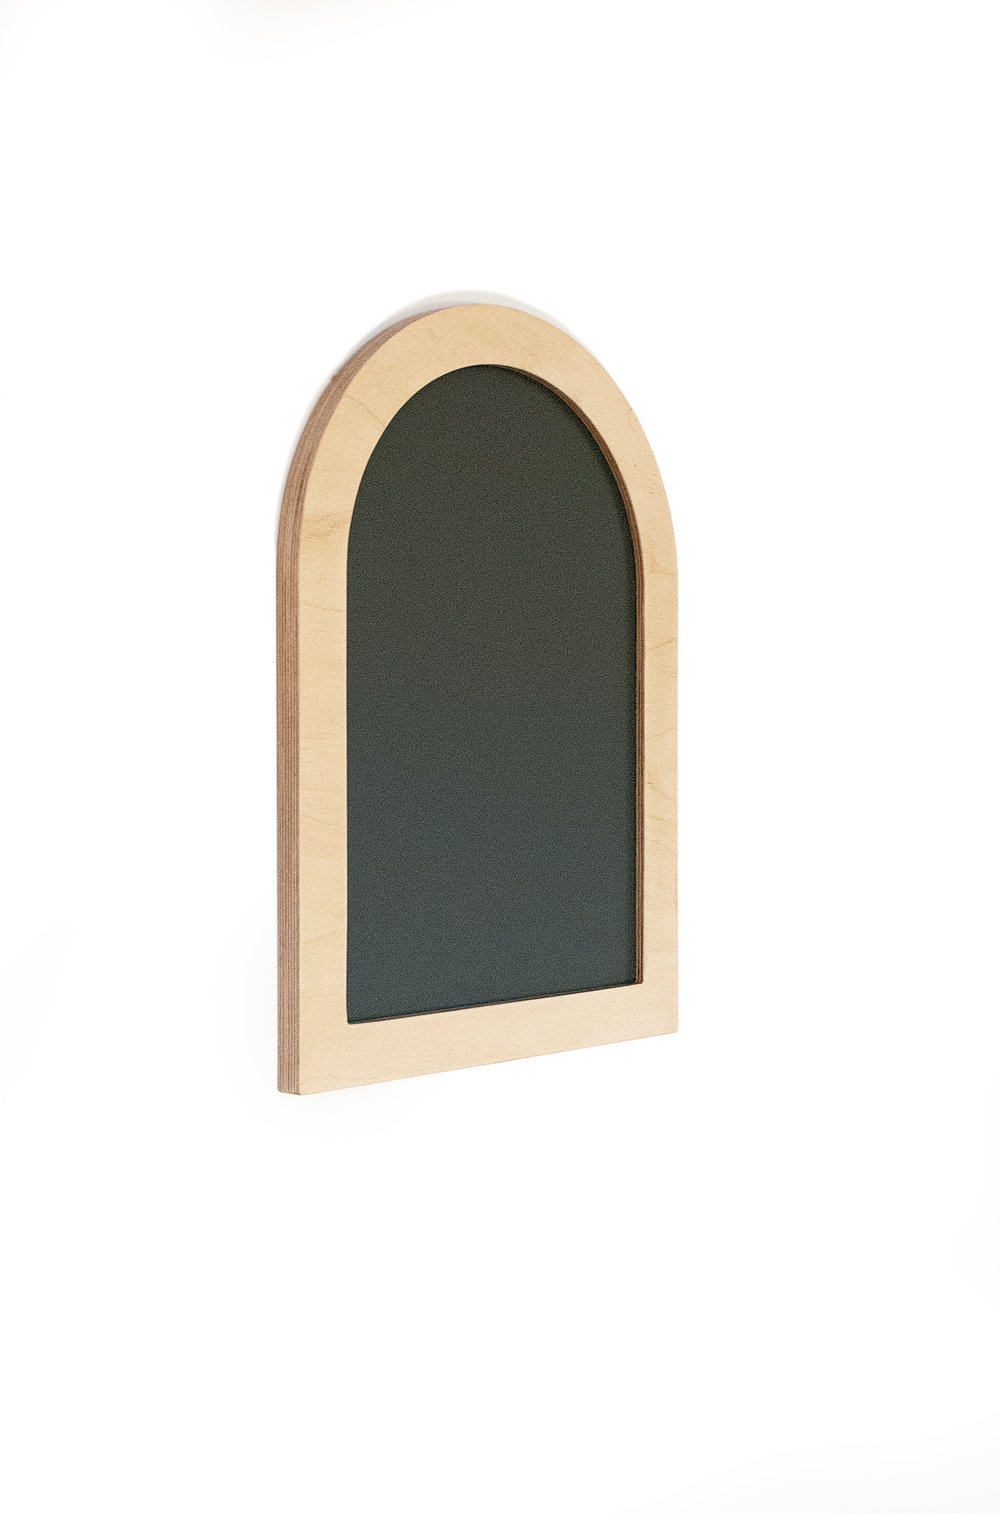 Tombstone Frame   Made of the same Baltic Birch Plywood to complement the Bound Series.